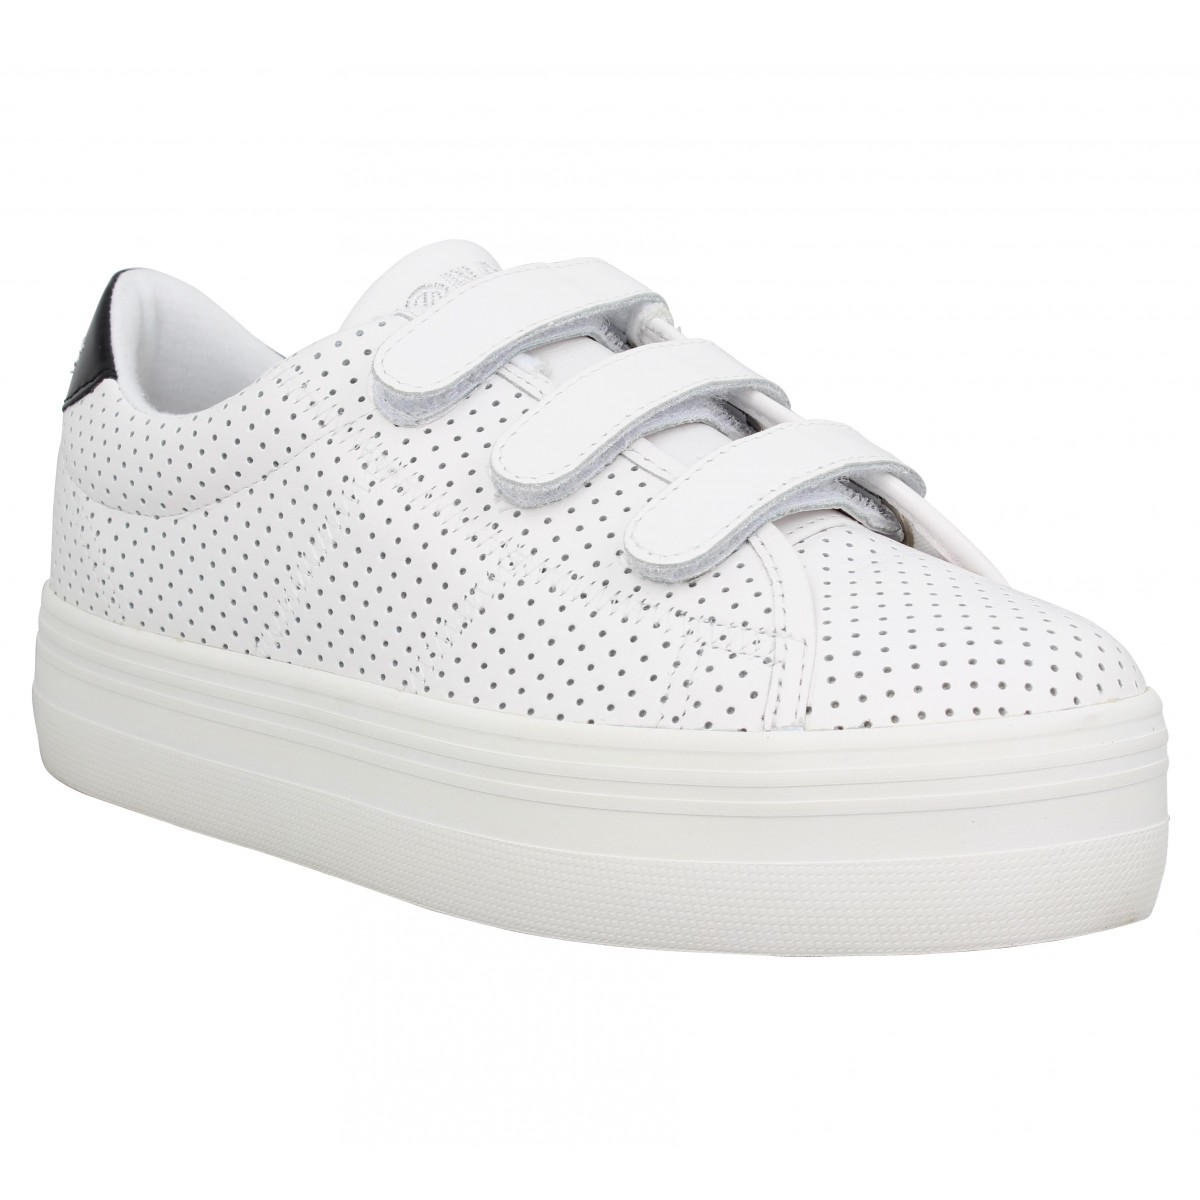 Baskets NO NAME Plato Straps punch Femme Blanc